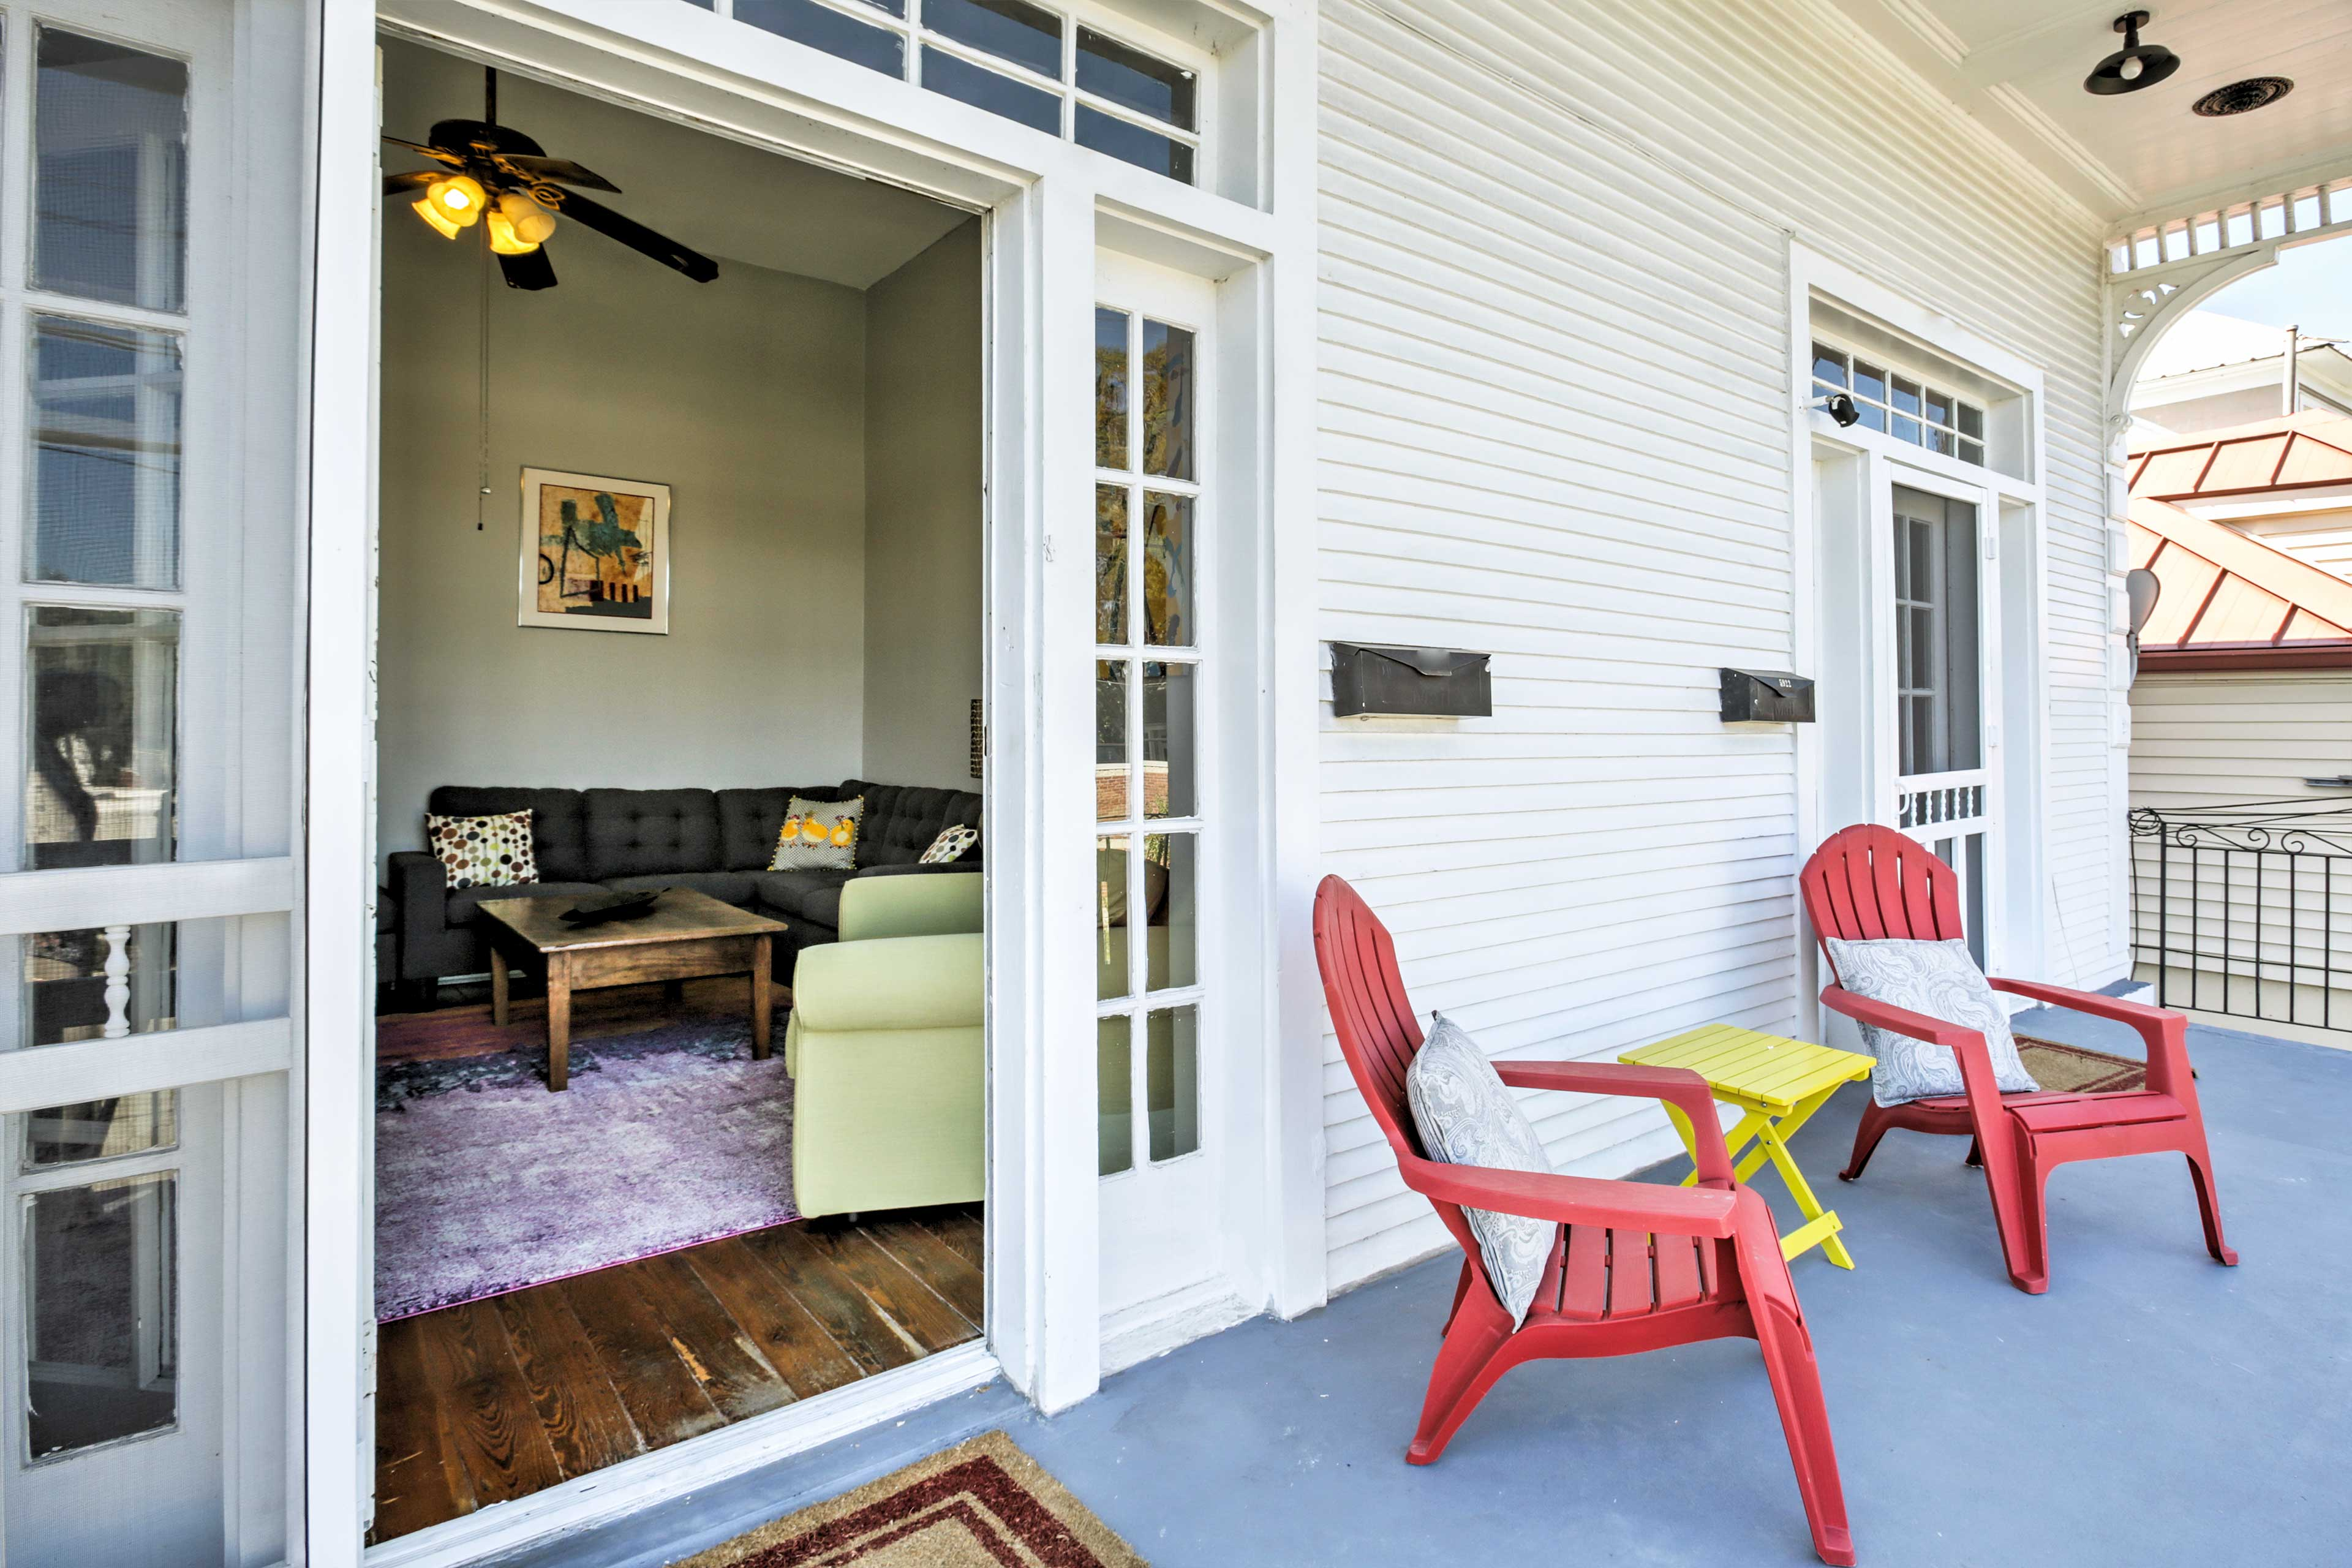 You'll have a front-row view of the vibrant street below right from the front porch!